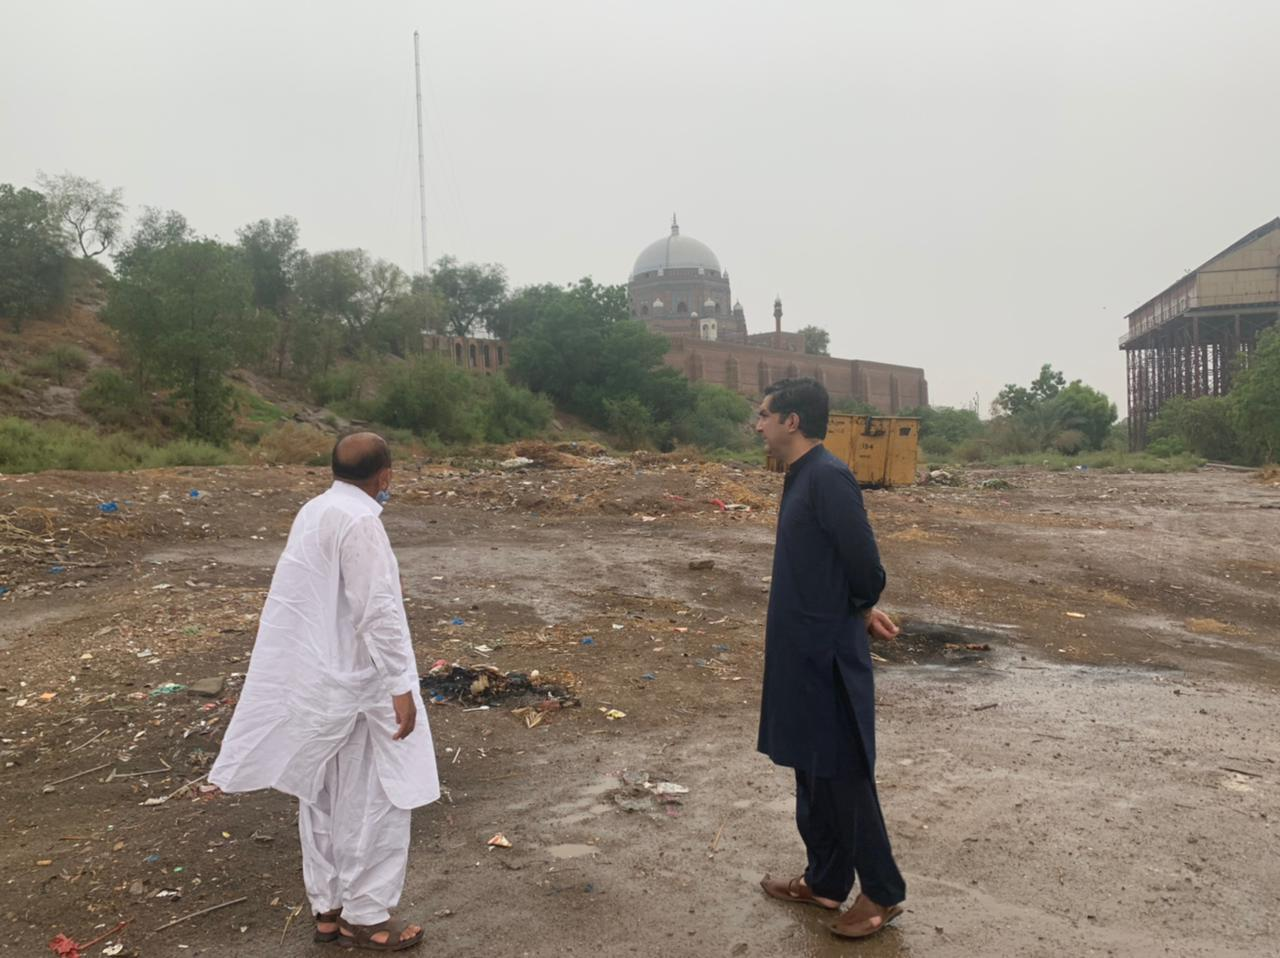 TAD to promote Religious Tourism in Punjab with 11 historical sites